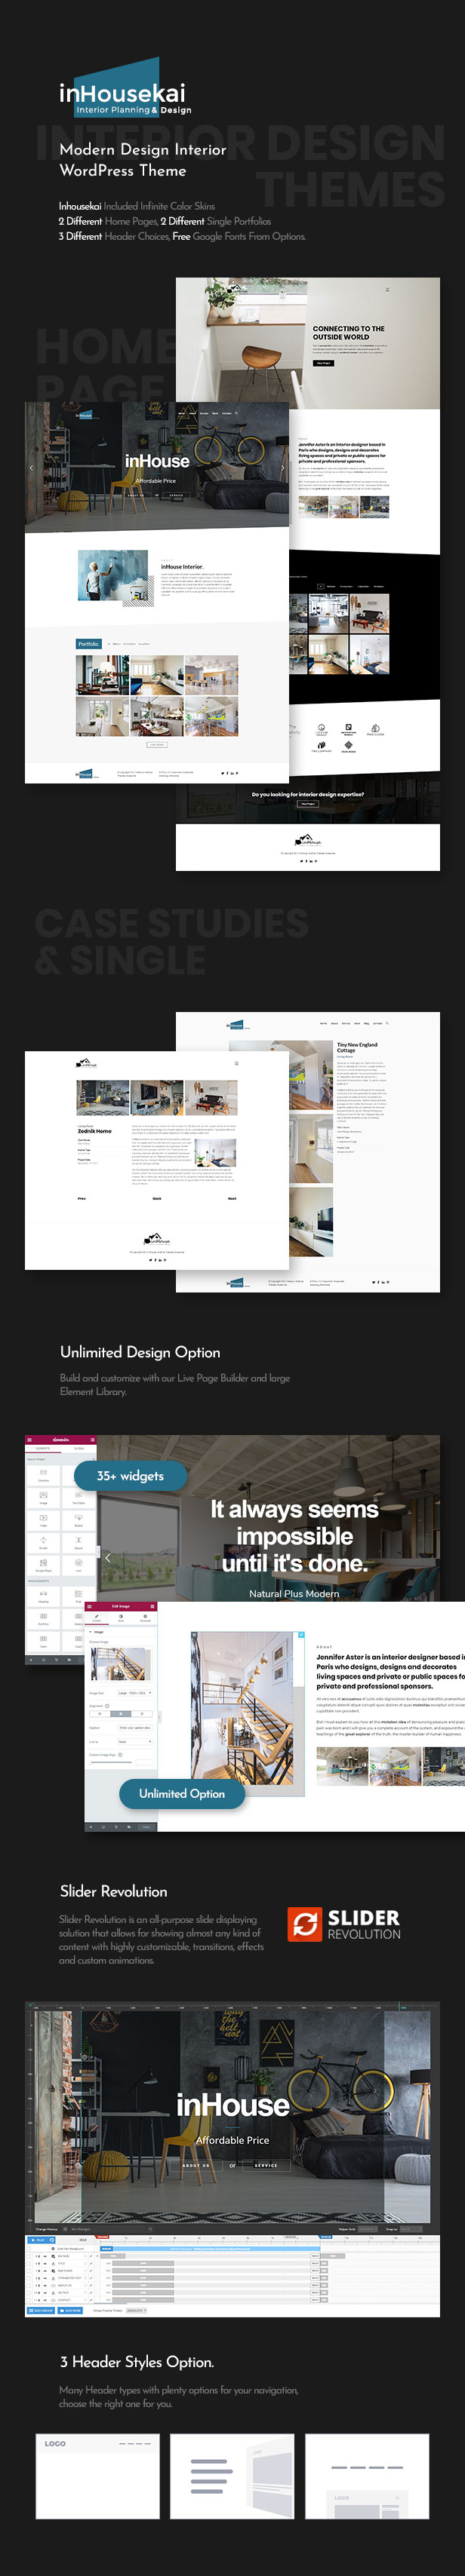 Inhousekai | Modern Design Interior WordPress Theme by themesawesome